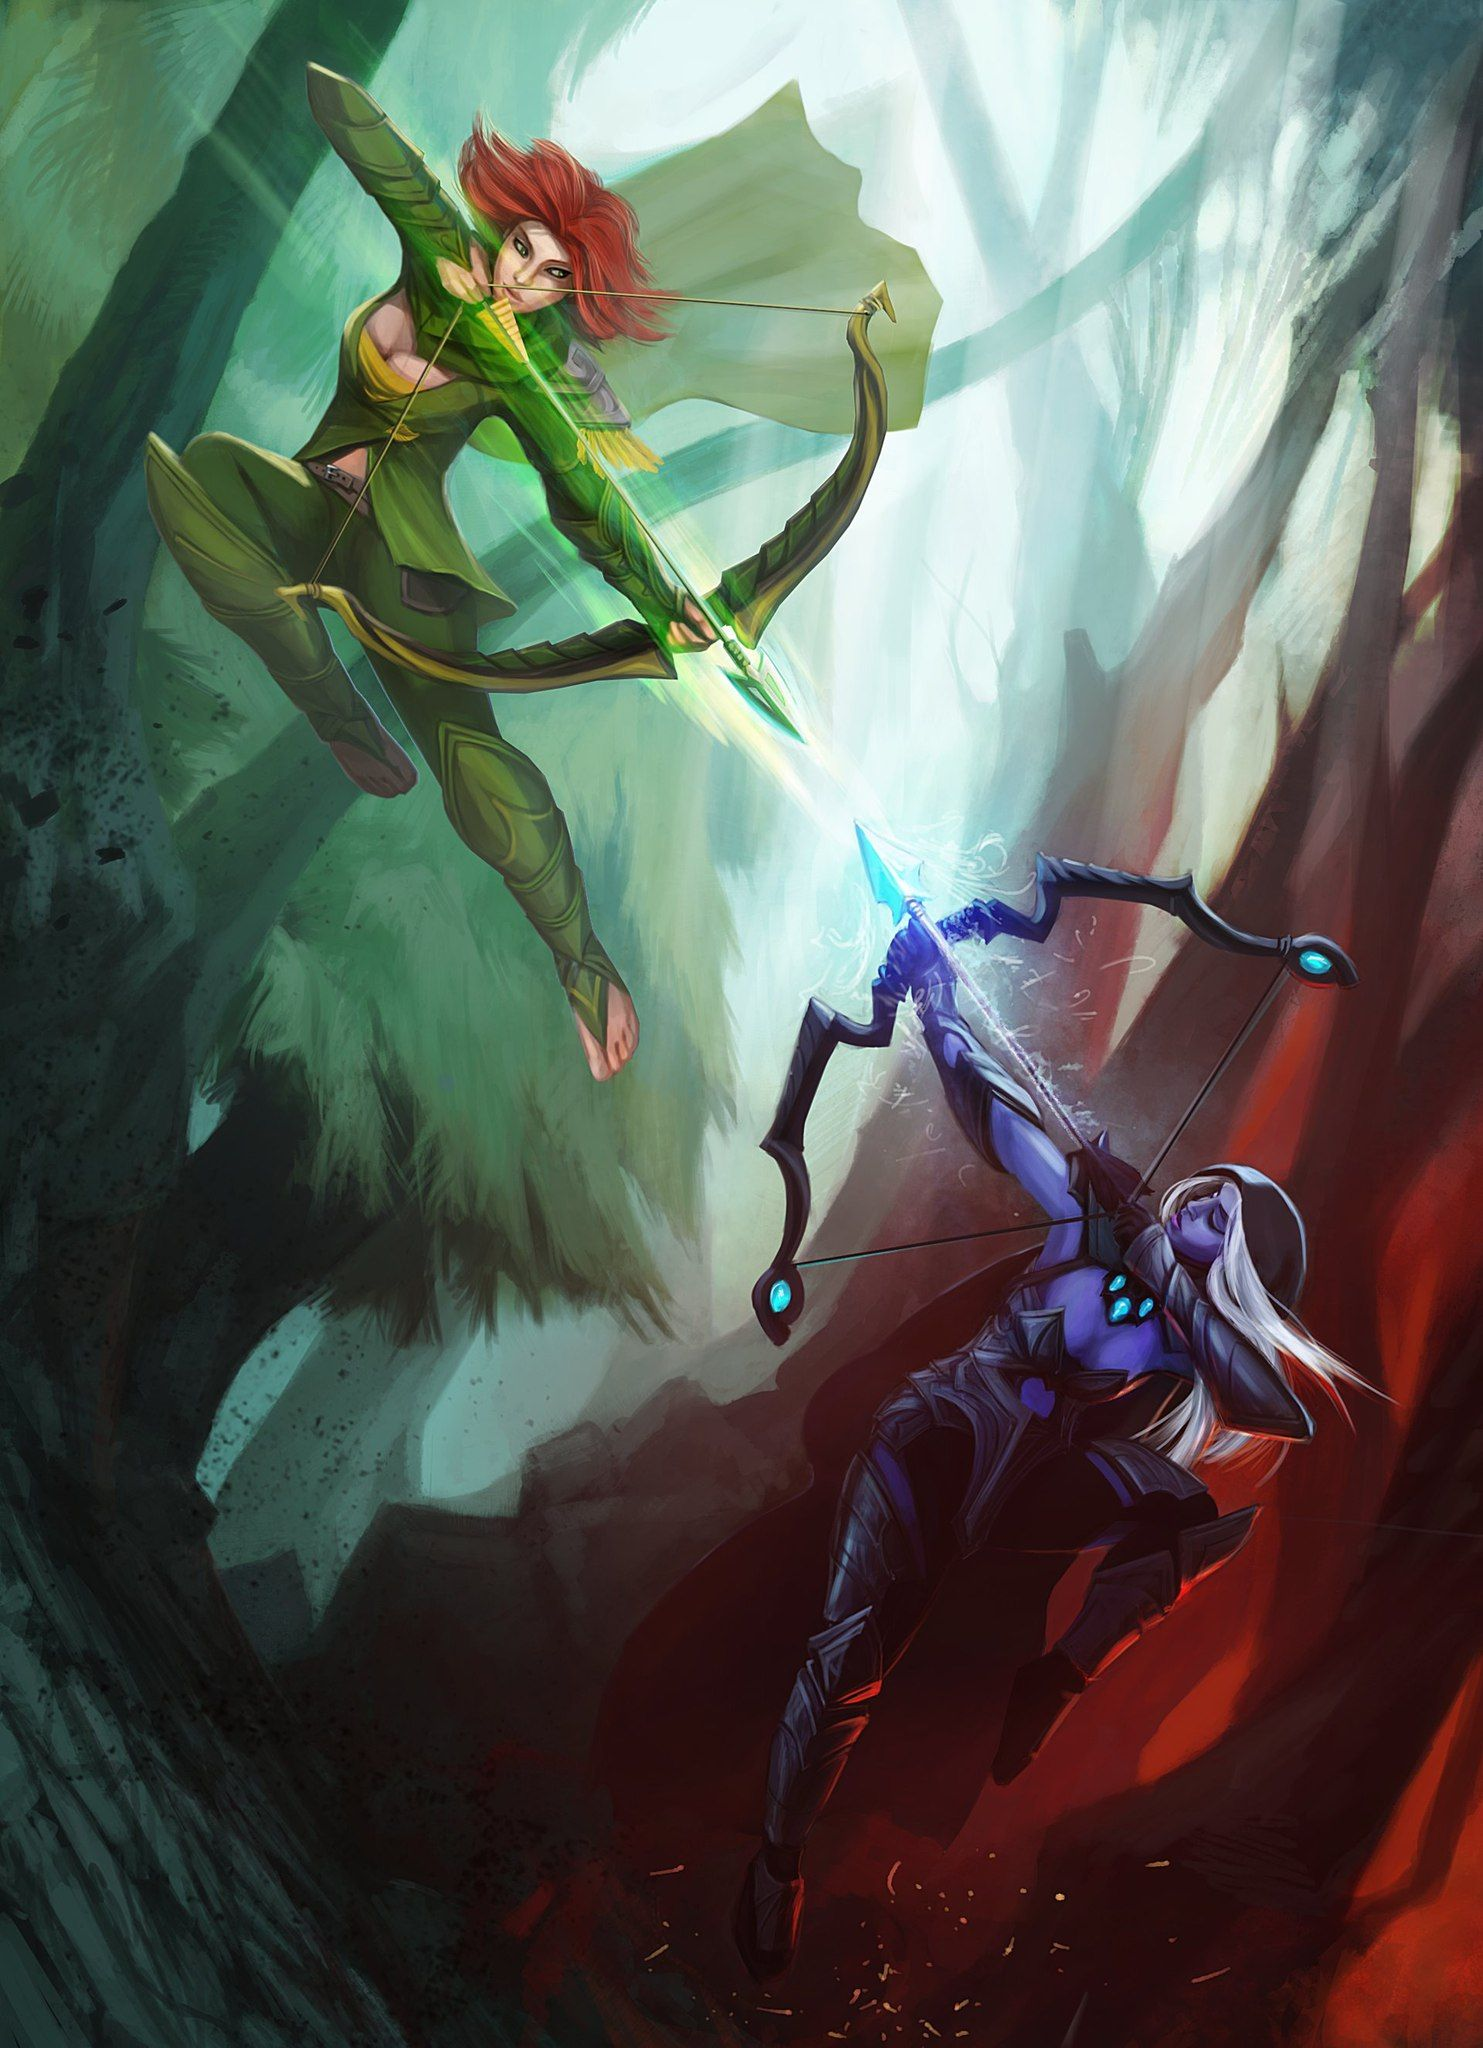 Pin by Gabriel Puebla on Fantasy | Art, Dota 2